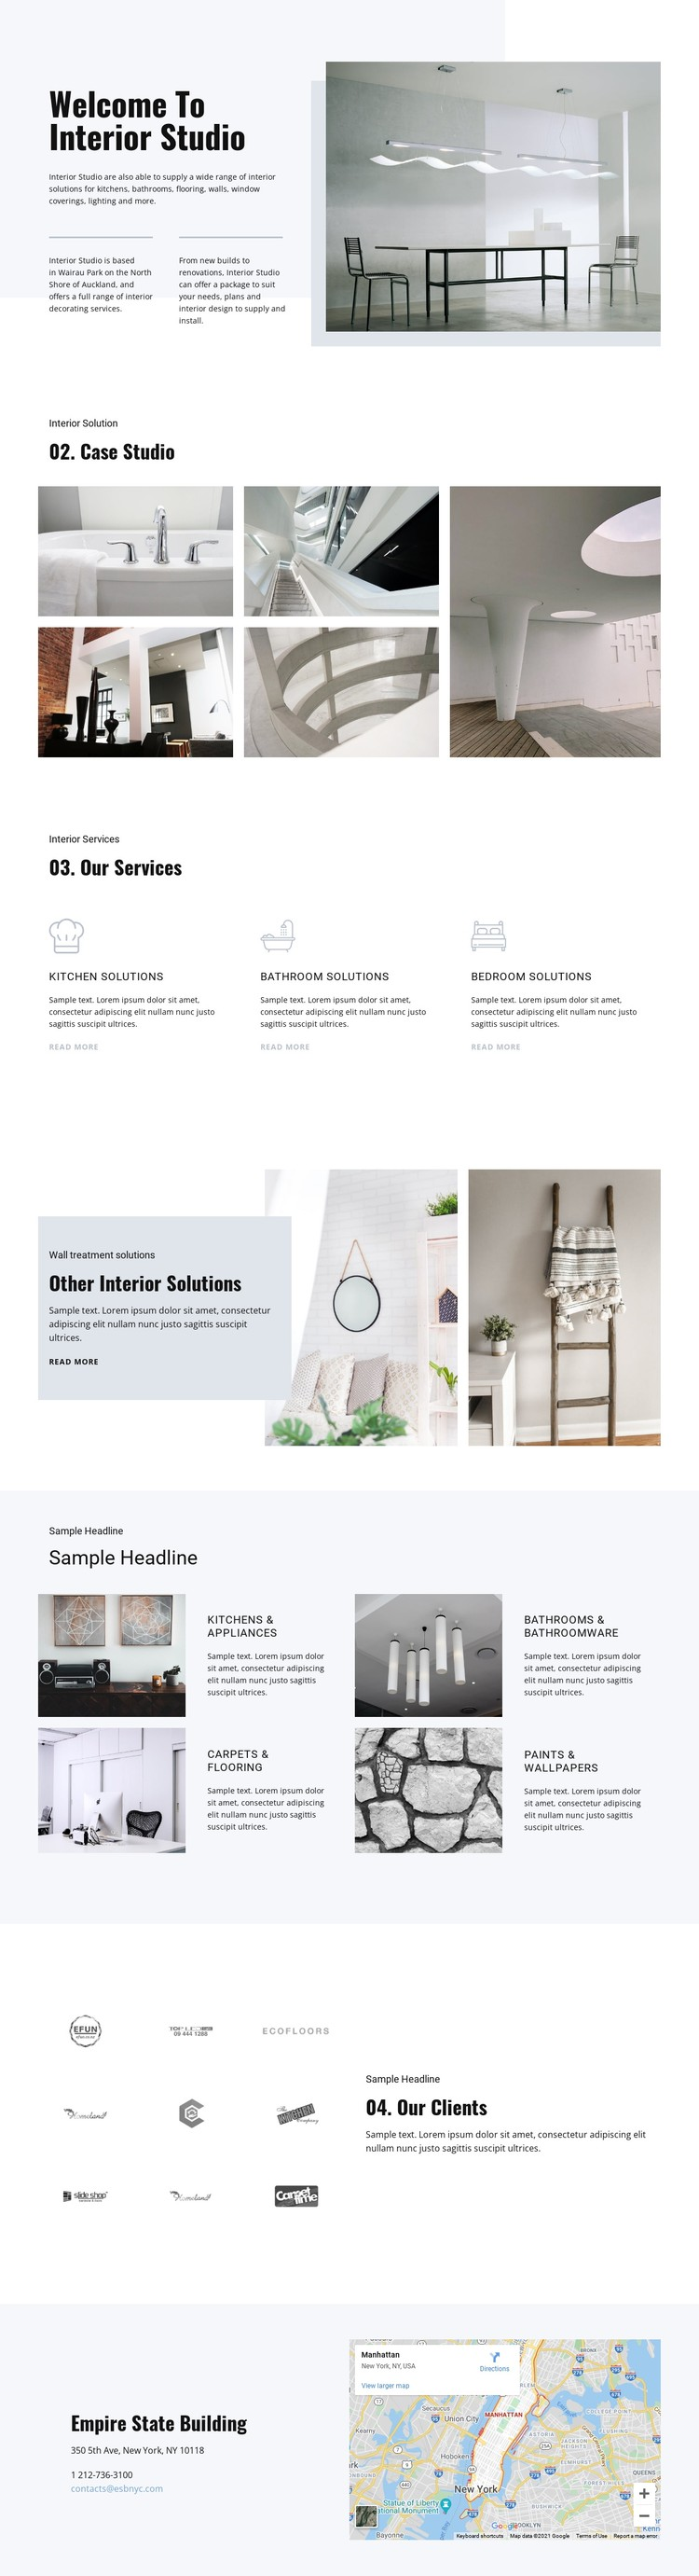 Welcome to interior studio CSS Template